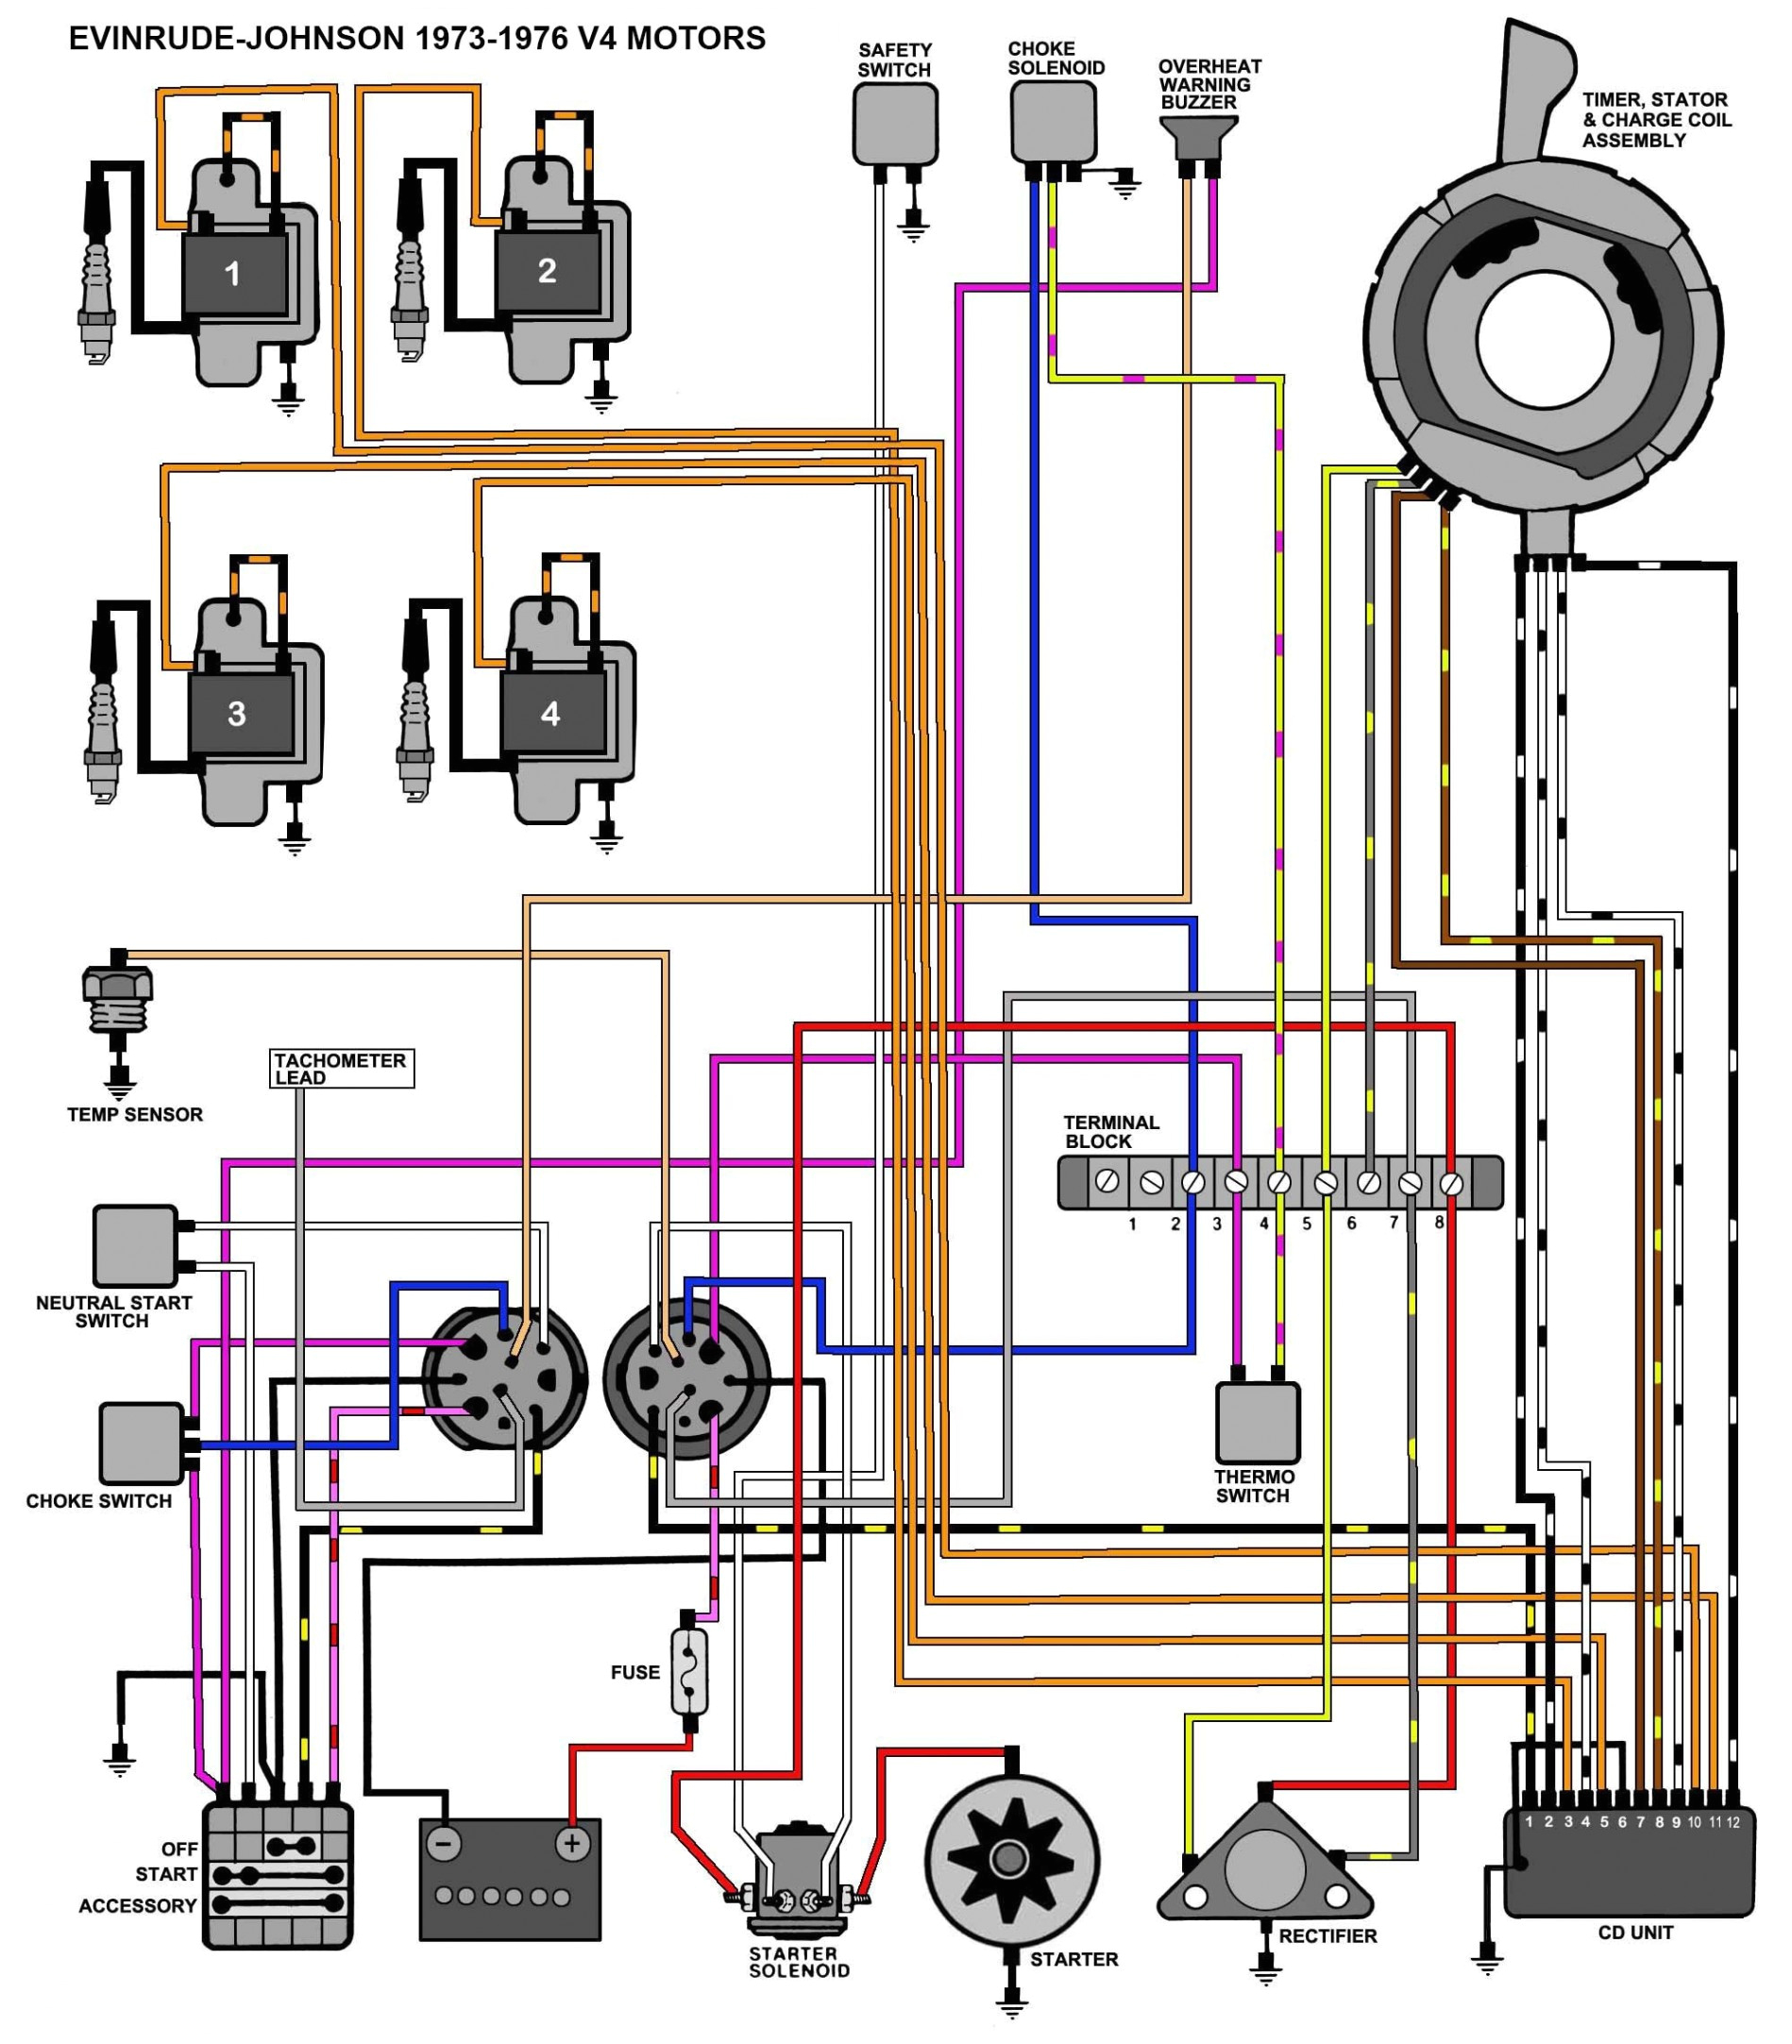 nissan outboard tachometer wiring wiring diagram papernissan outboard wiring diagram wiring diagram used nissan outboard tachometer